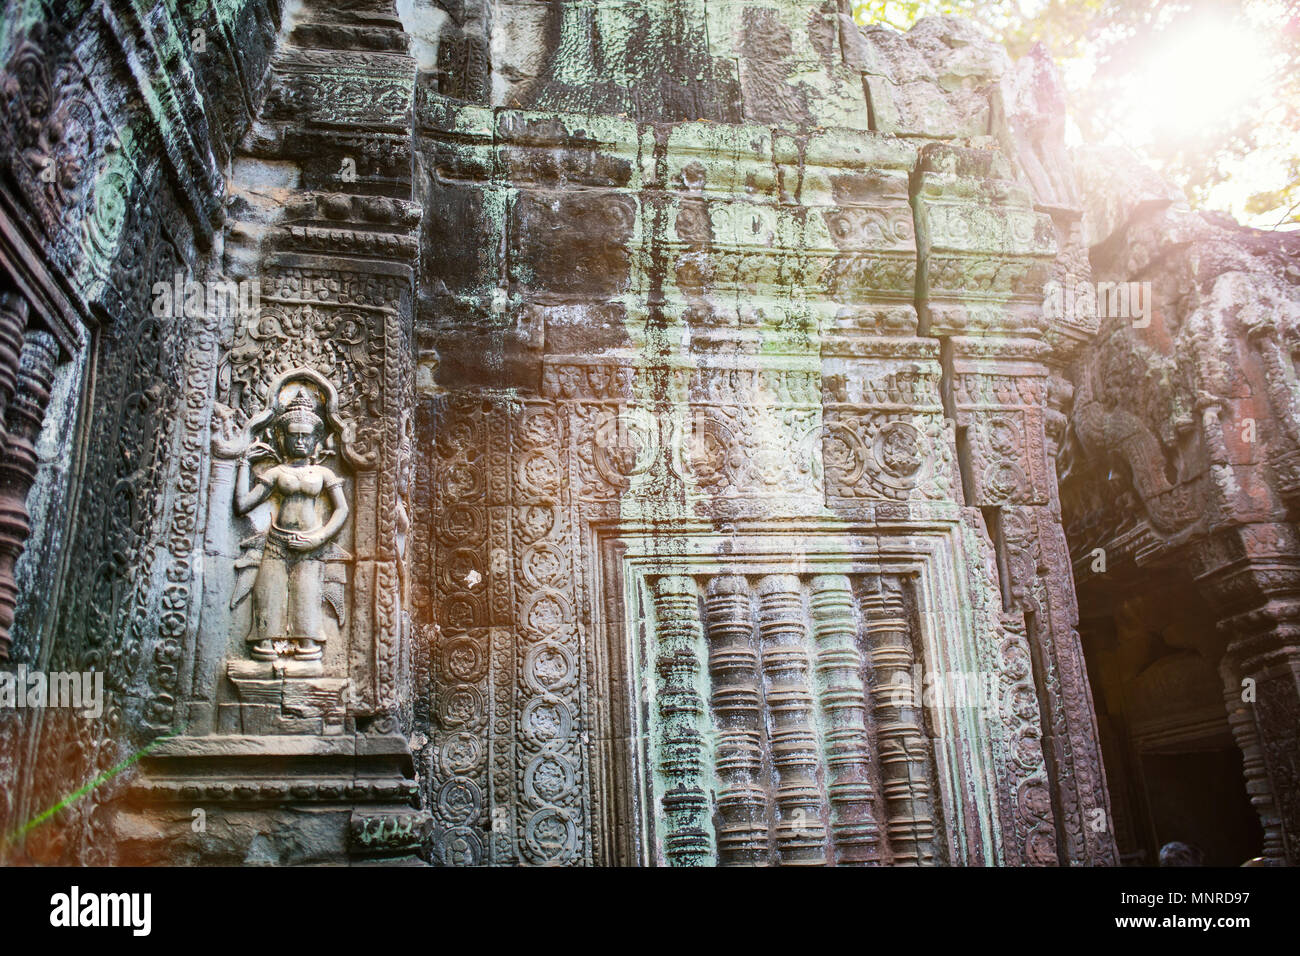 Bas reliefs in Ta Prohm in Angkor Archaeological area in Cambodia - Stock Image